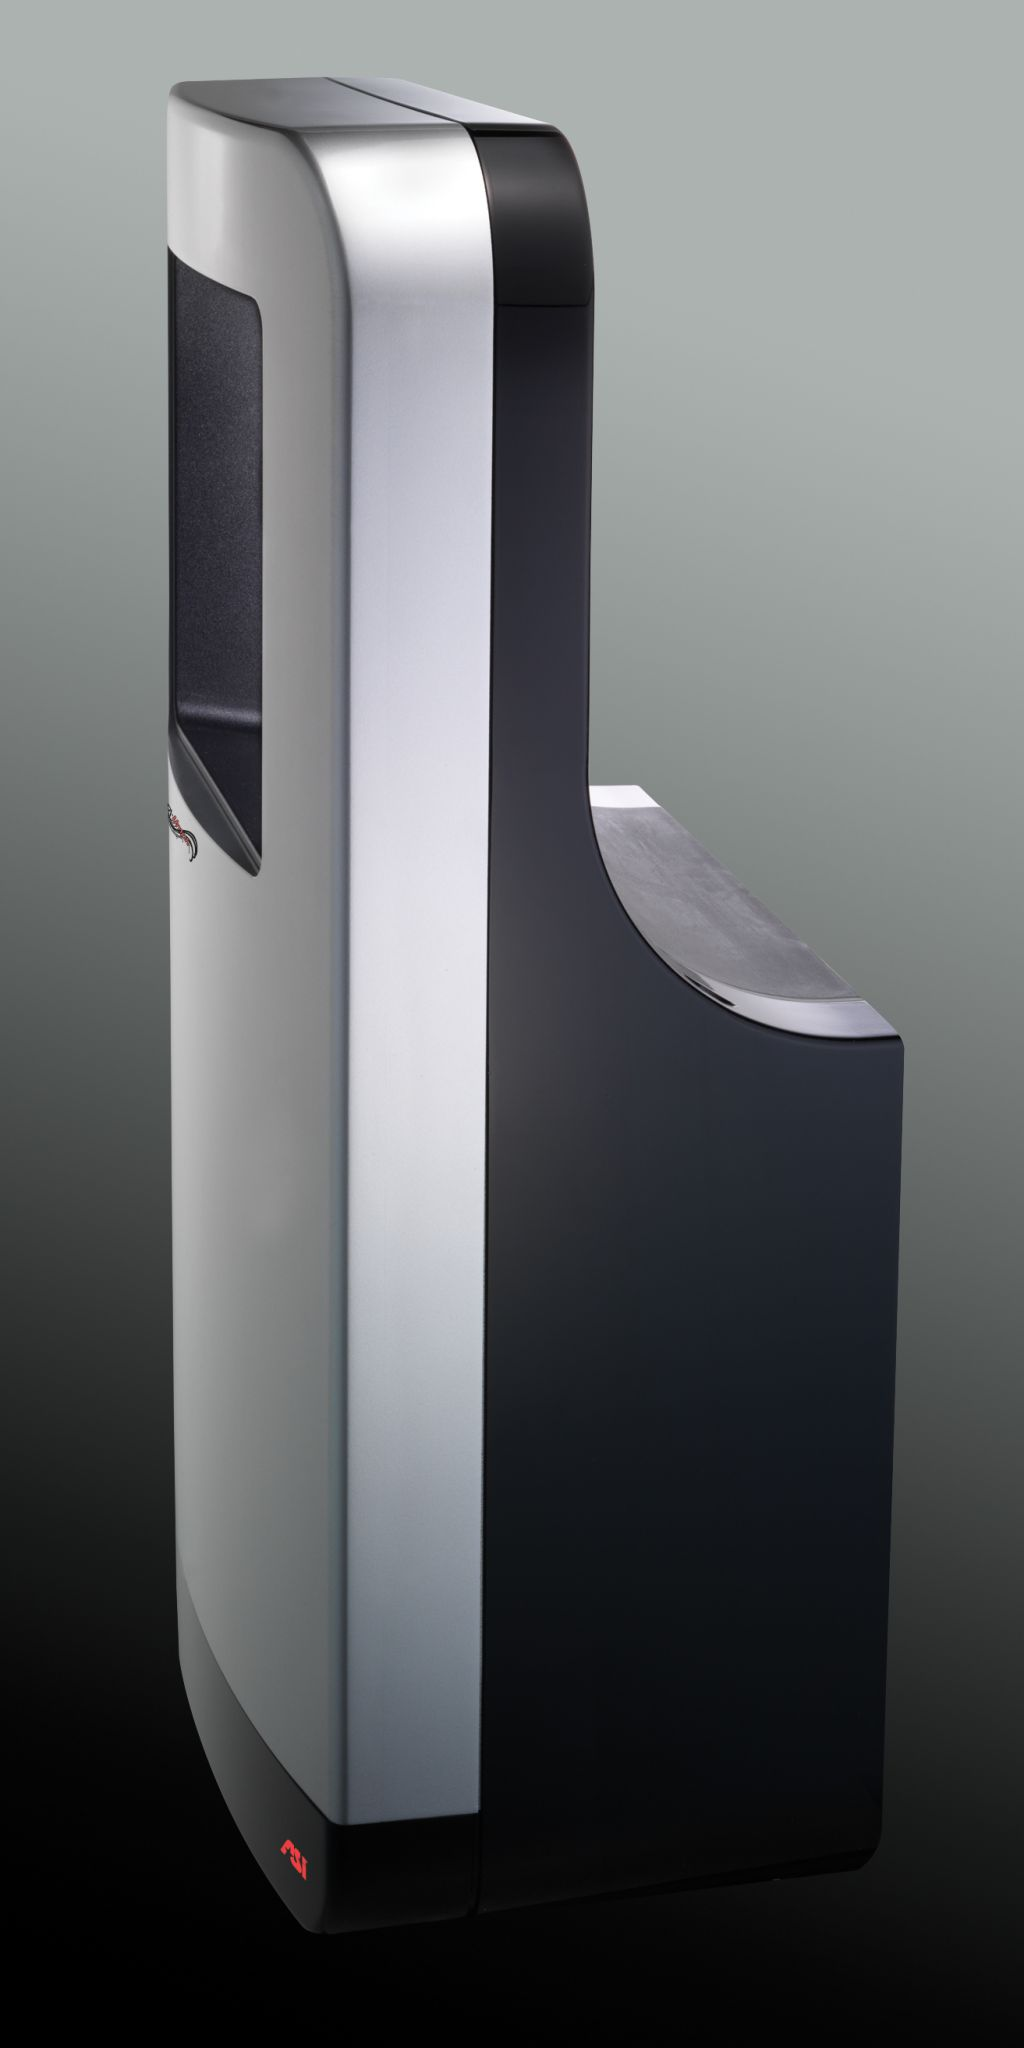 Standard hand dryers for barrier-free applications are 100 mm (4 in.) deep, and can be installed anywhere in a washroom, change room, or locker room. Highspeed models require a recess kit, or are available as recessed or semi-recessed units to satisfy accessibility conditions. Designers should learn which products possess high-effi ciency particulate air (HEPA) fi lters, anti-microbial fi lters, adjustable heaters, and adjustable sound pressure or level reduction.